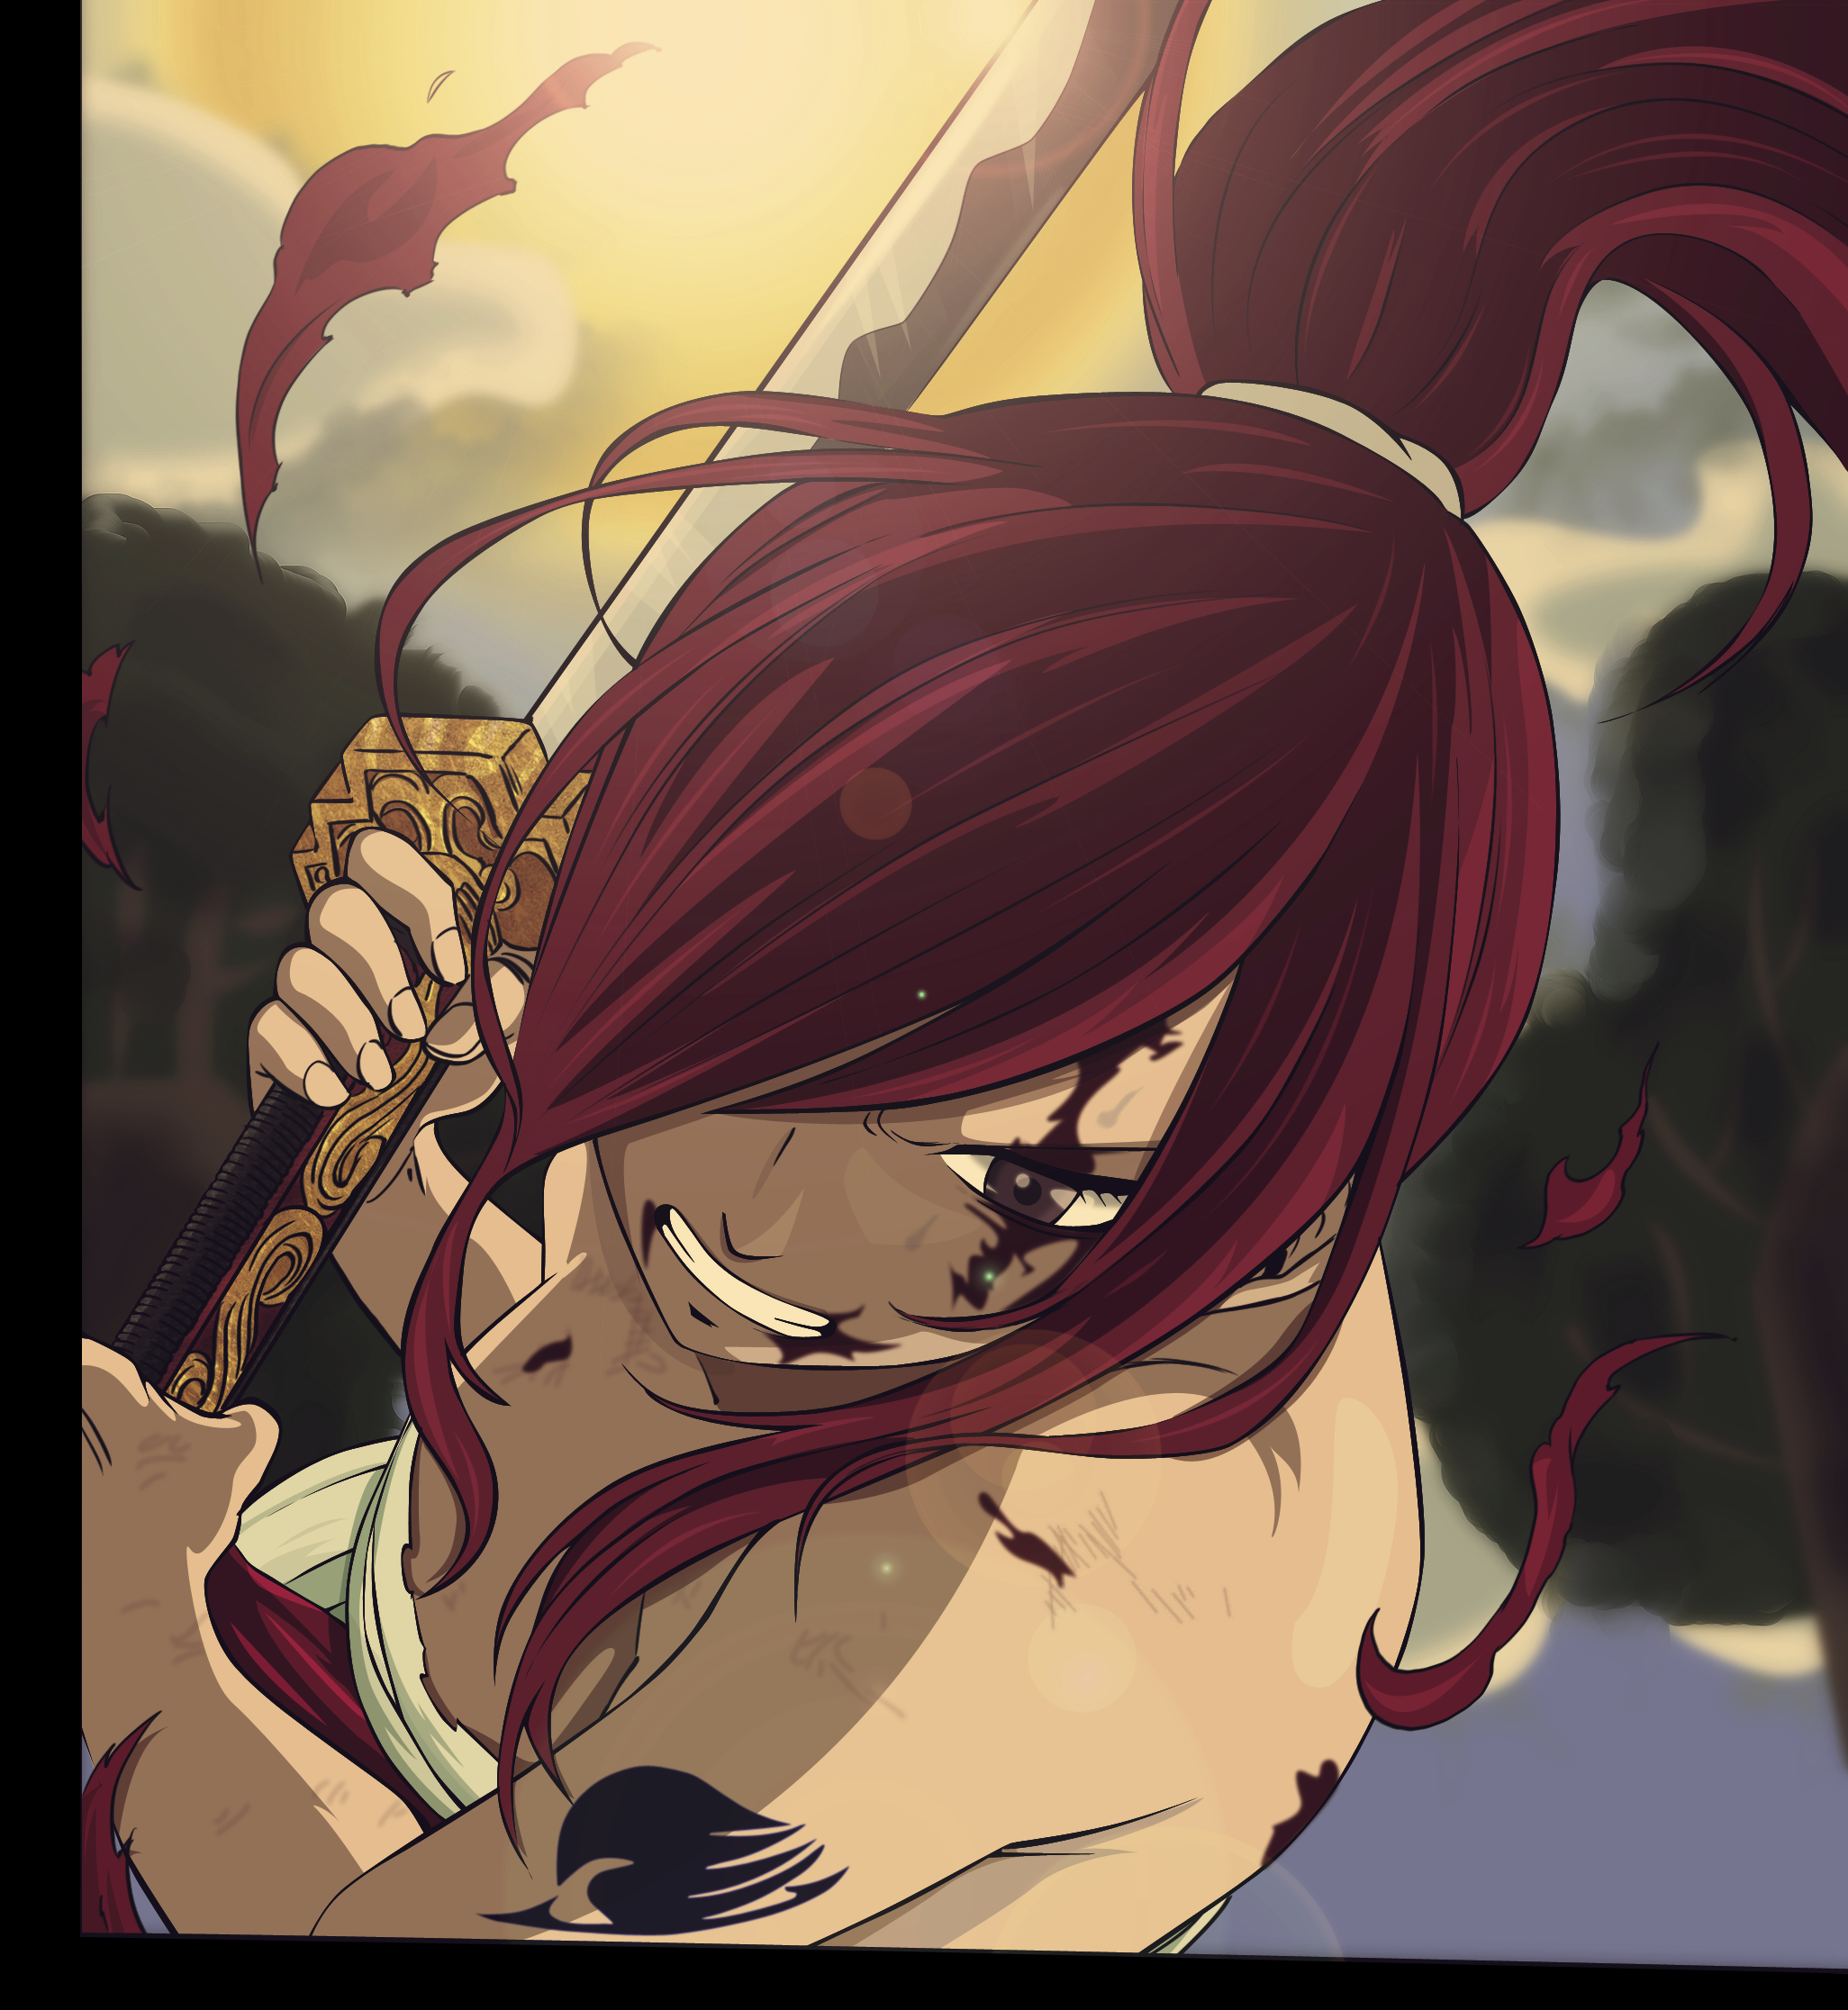 Erza Scarlet Wallpaper: Erza Scarlet By MetalboyII On DeviantArt